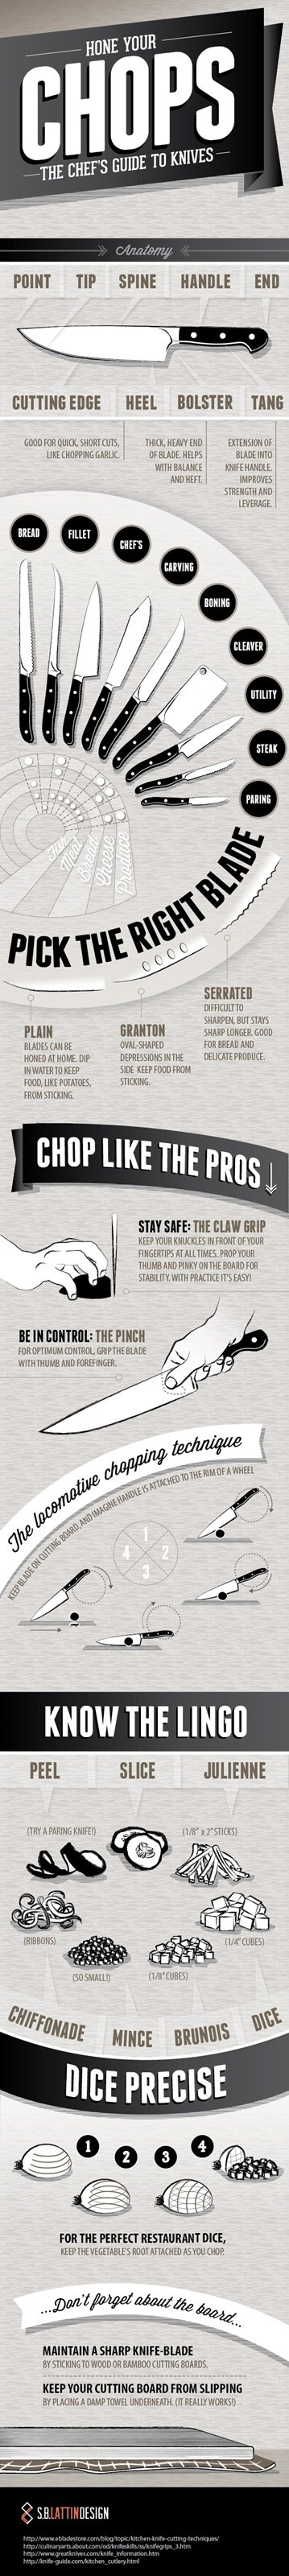 how-to guide knives safety - 6688746240